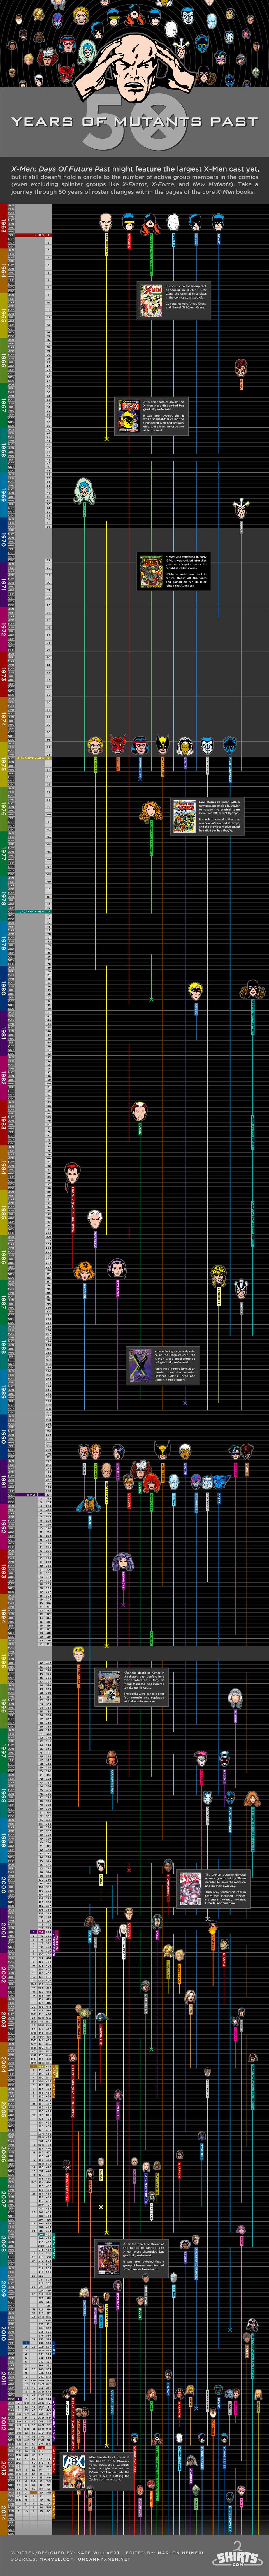 50 Years of Mutants: An X-Men Timeline